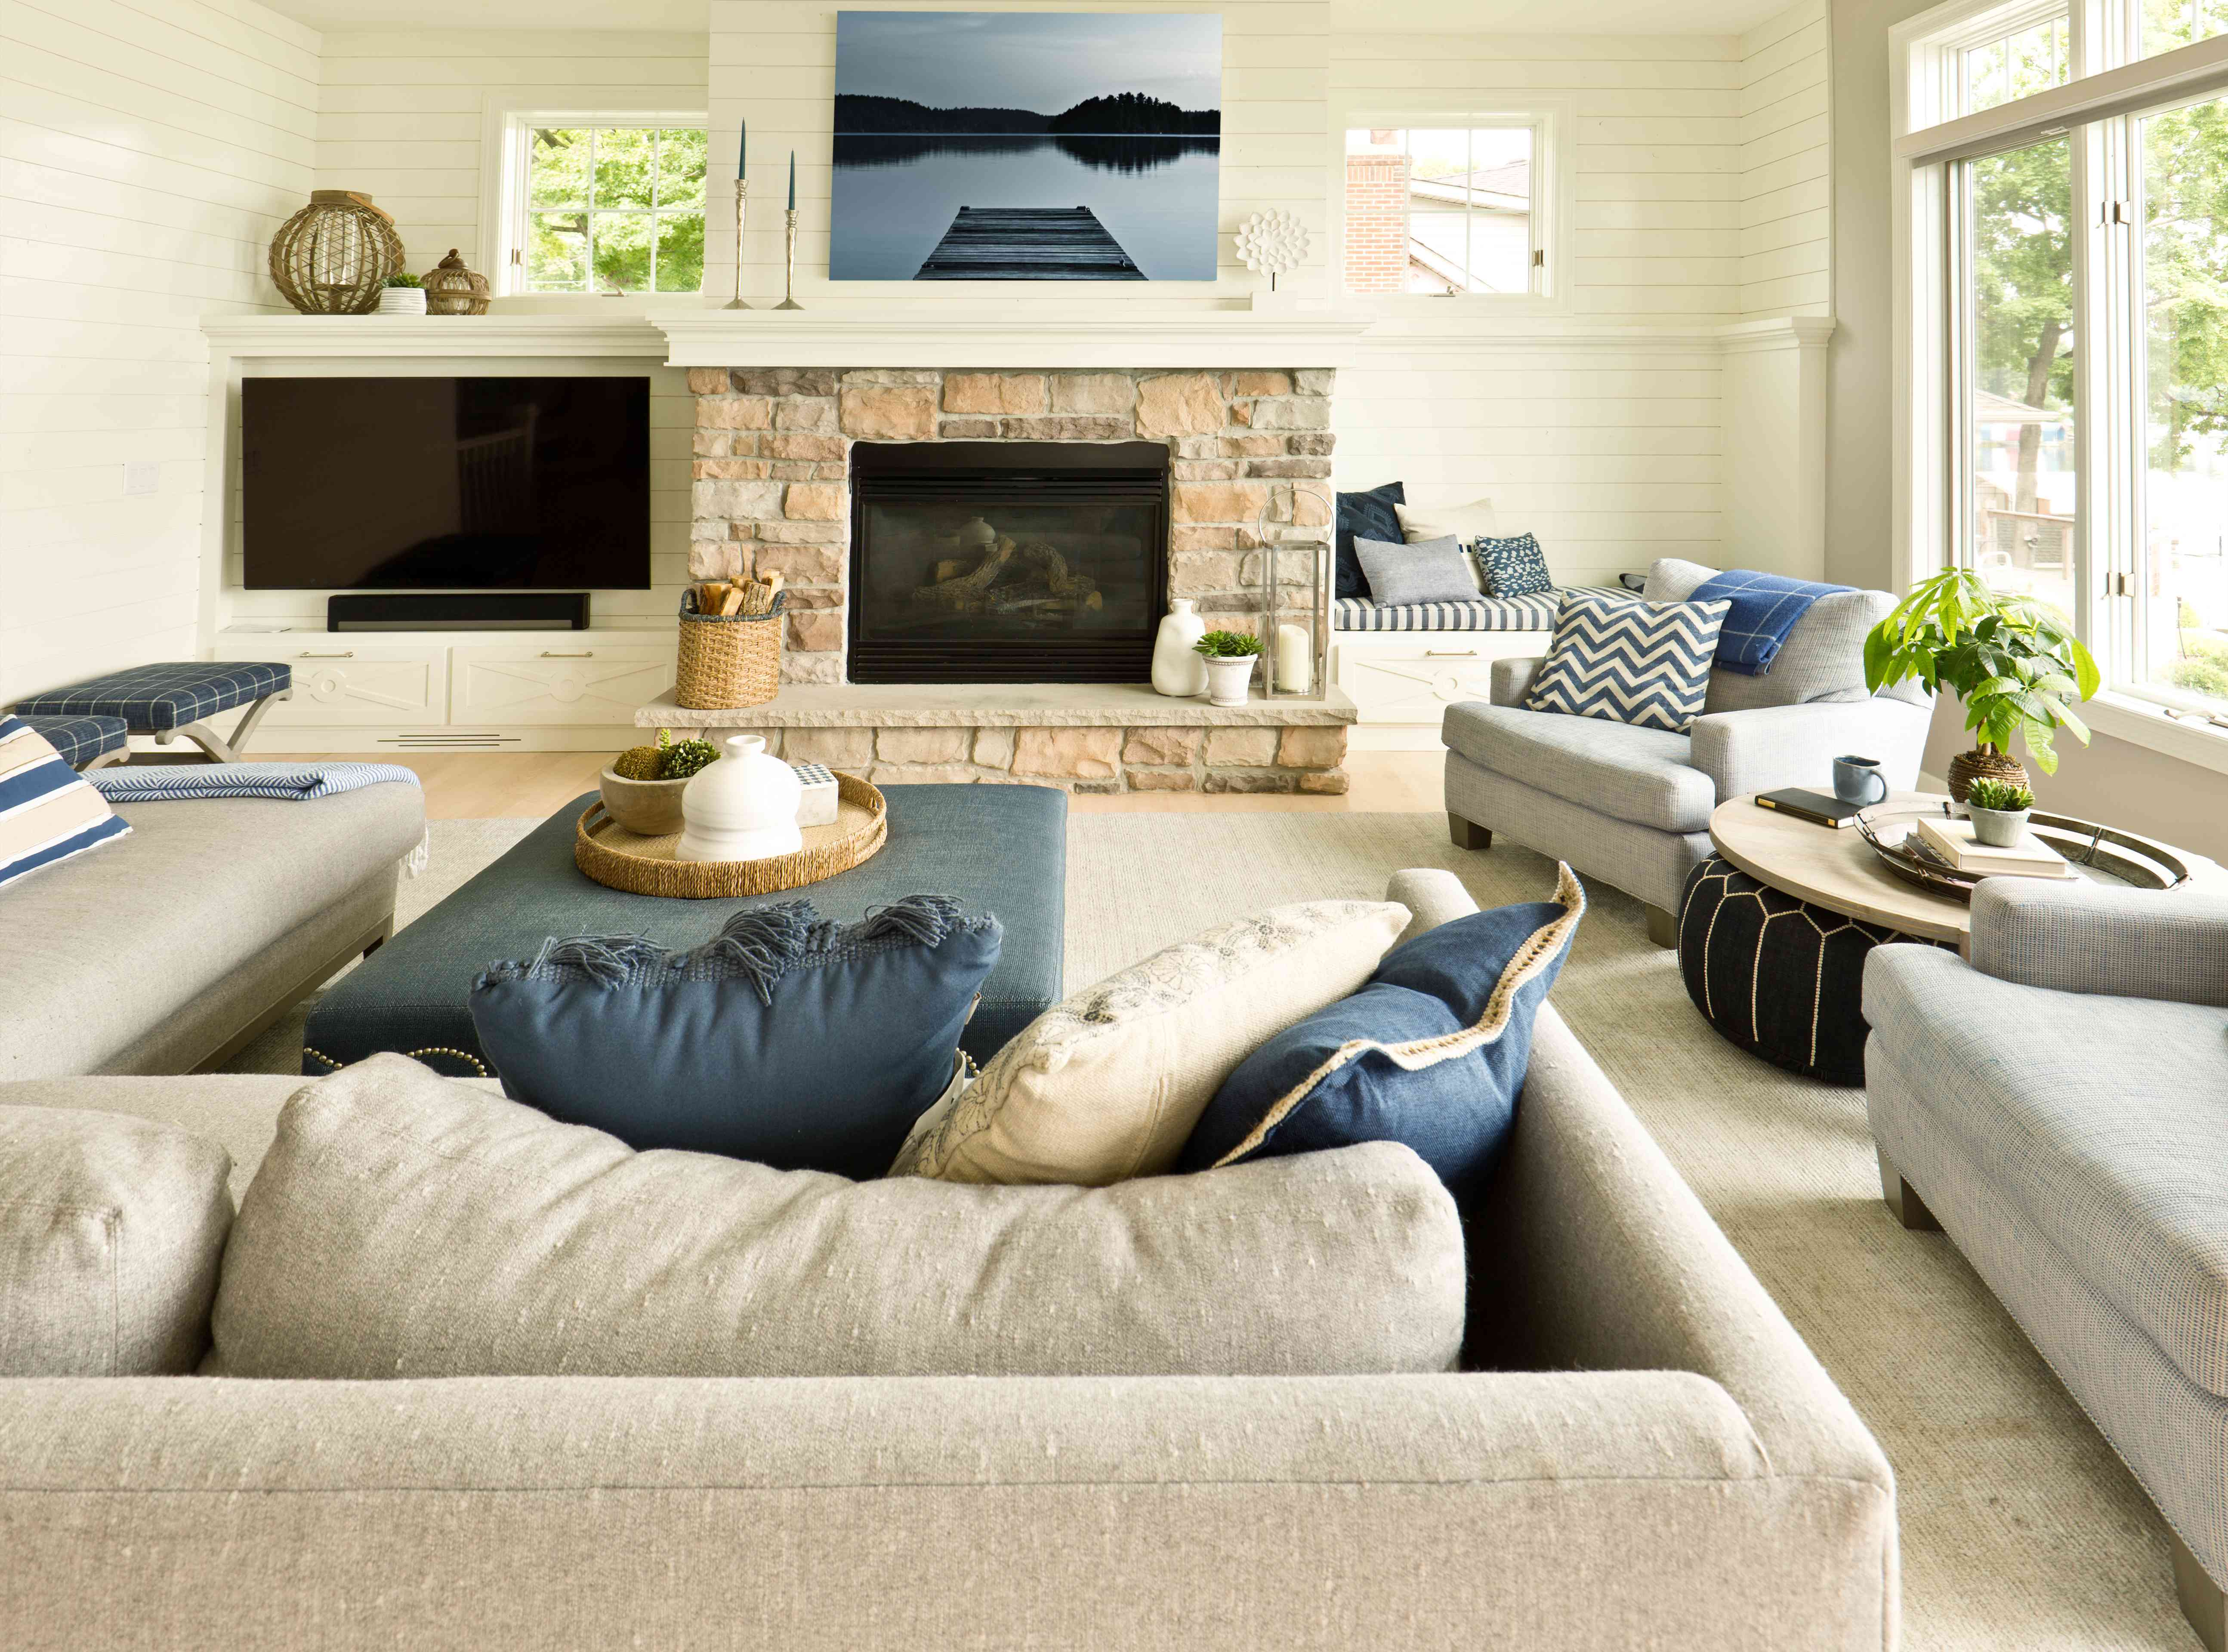 Modern Living Room Home Interior Design with fireplace and Television